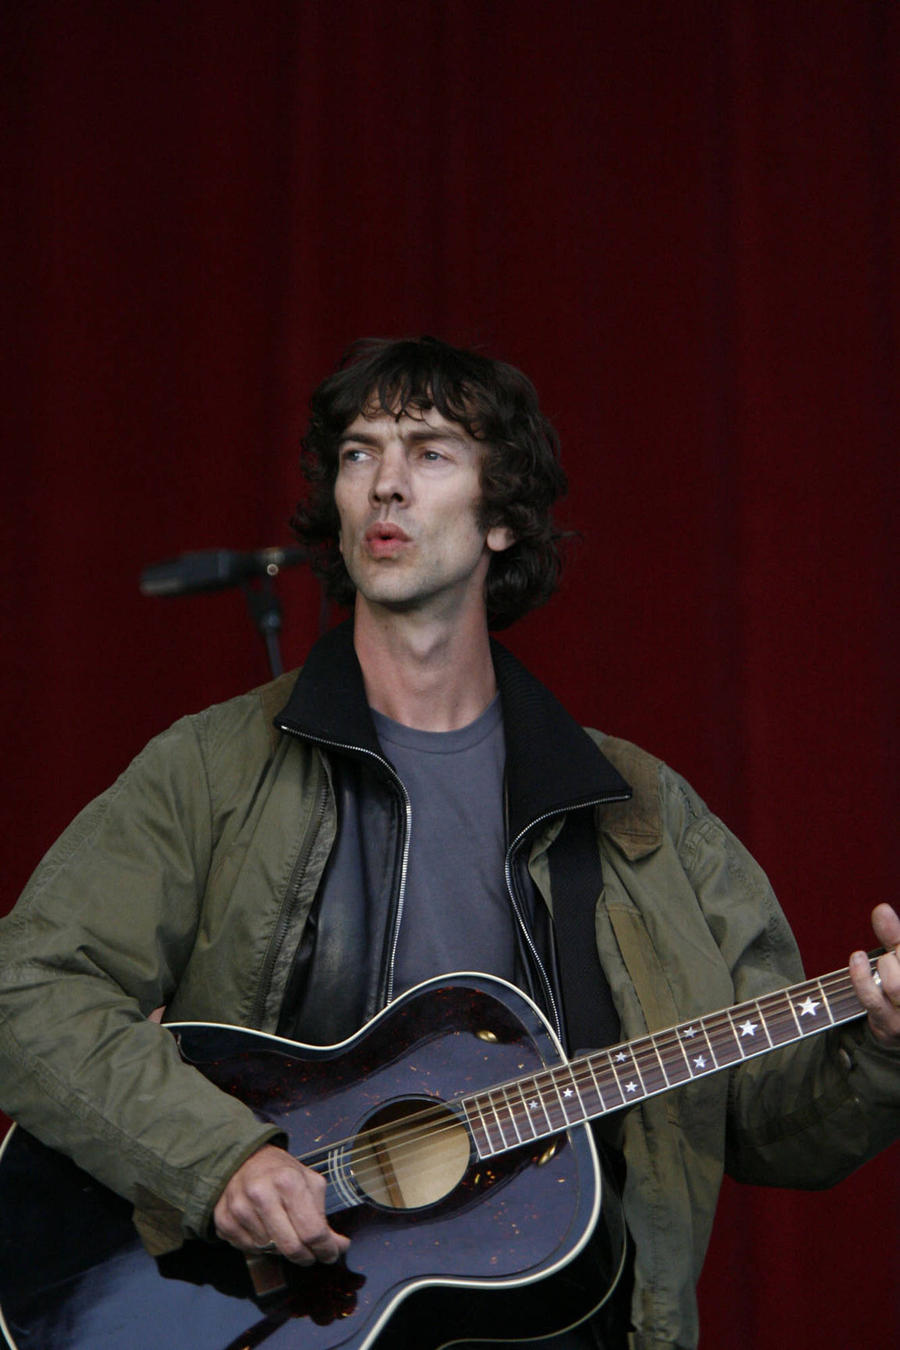 Richard Ashcroft Wants To Write Musical With Gallagher Brothers